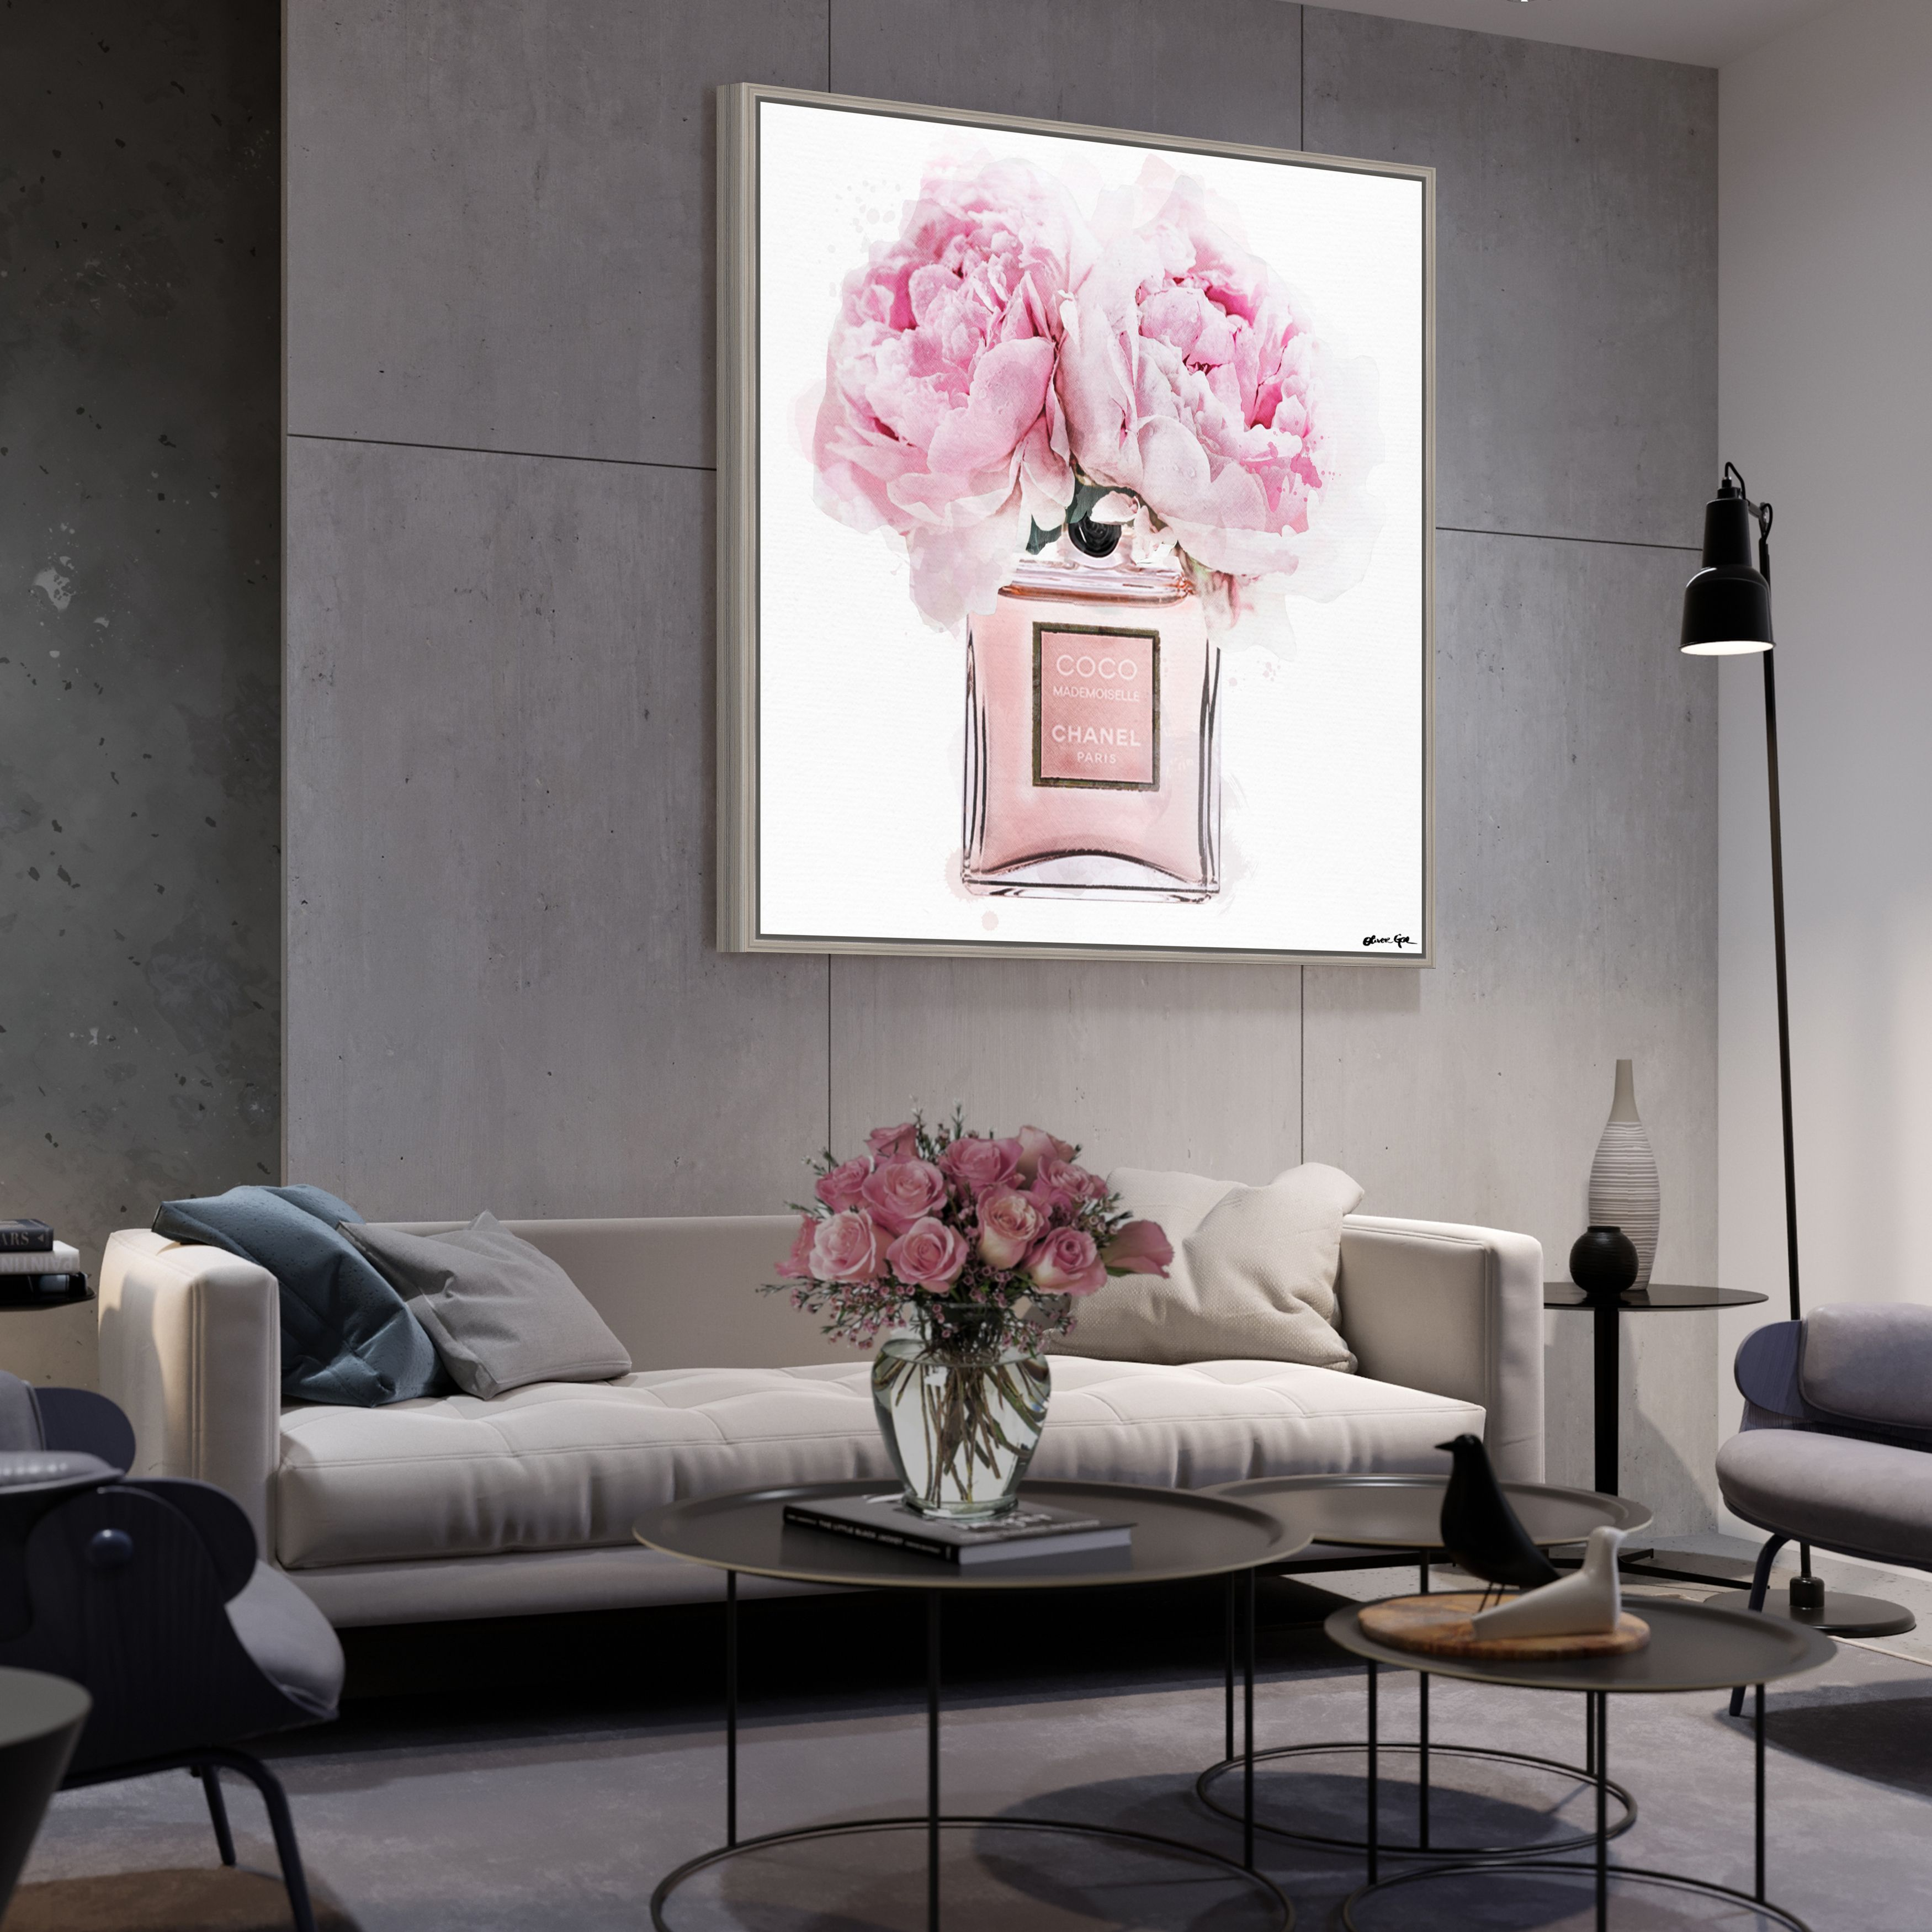 Add A Pop Of Color To Any Room With A Fashionable Wall Art From Oliver Gal